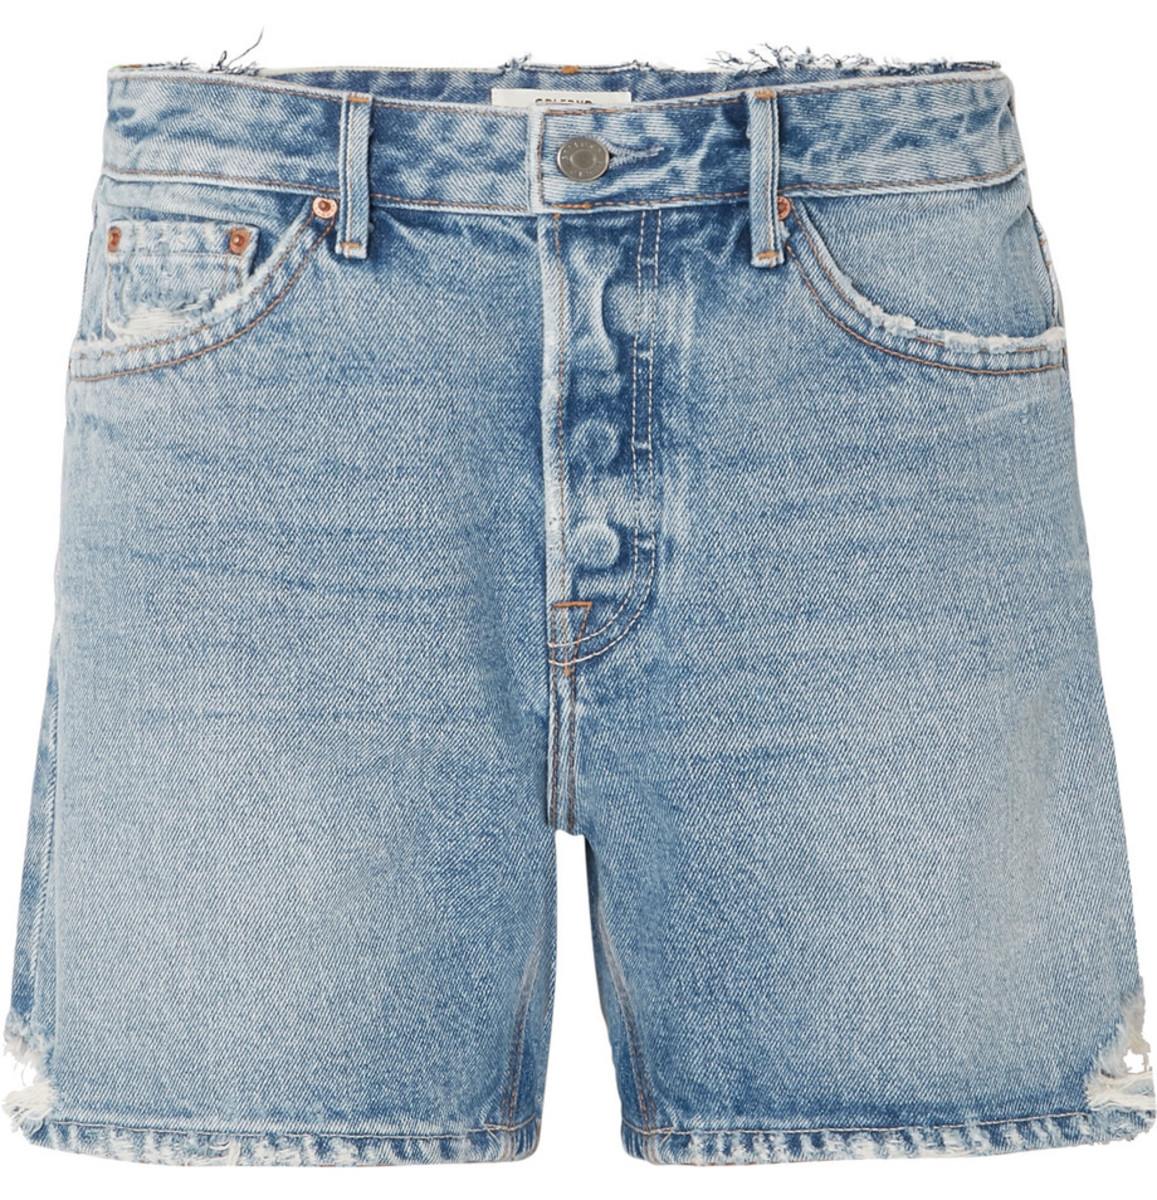 Grlfrnd Jourdan Distressed Denim Shorts, $158, available here.